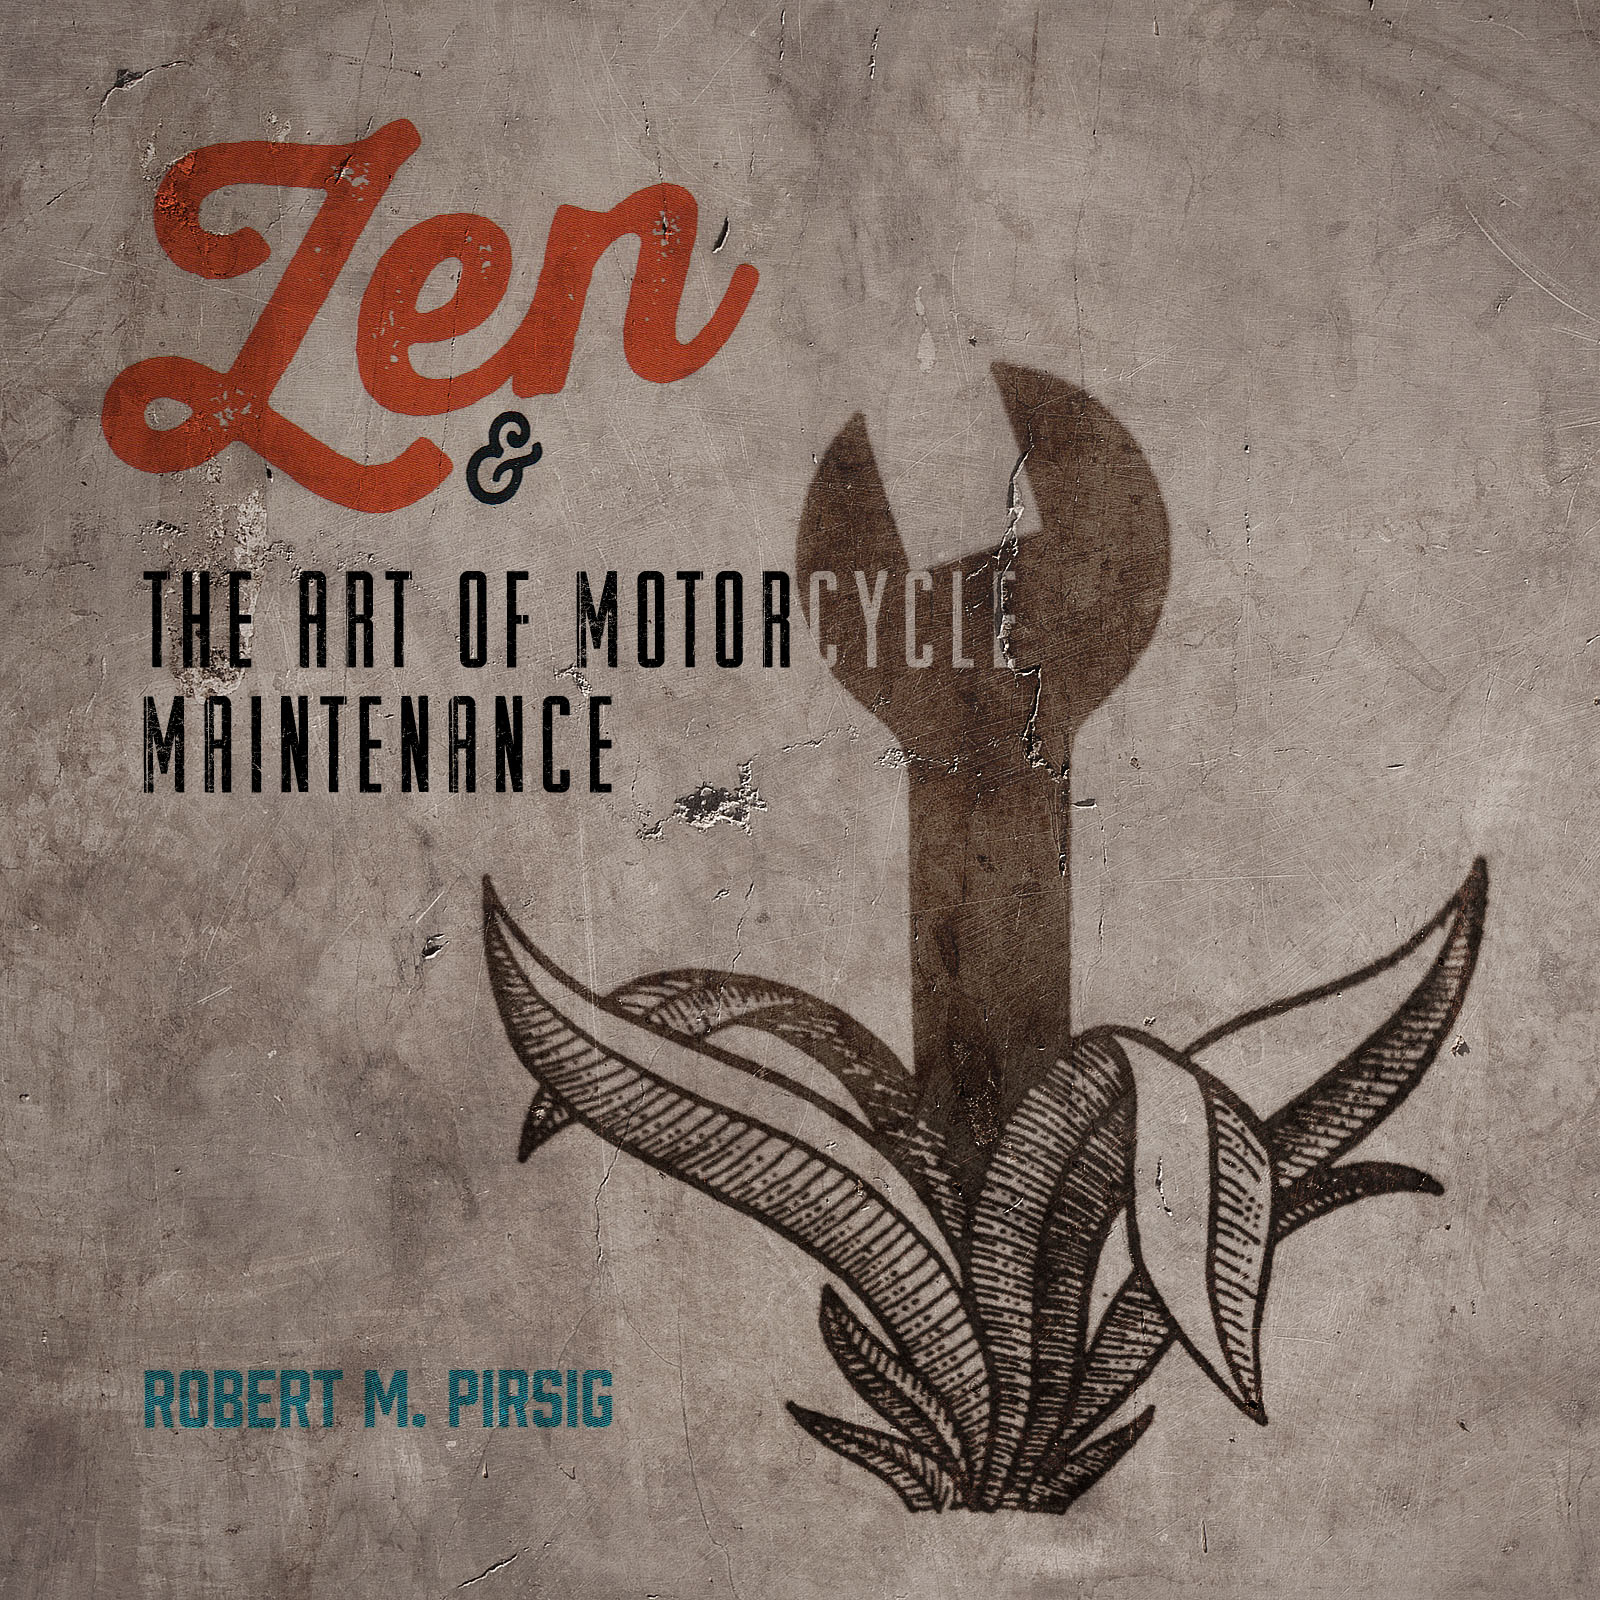 zen-and-the-art-of-motorcycle-maintenance.jpg?fit=1600%2C1600